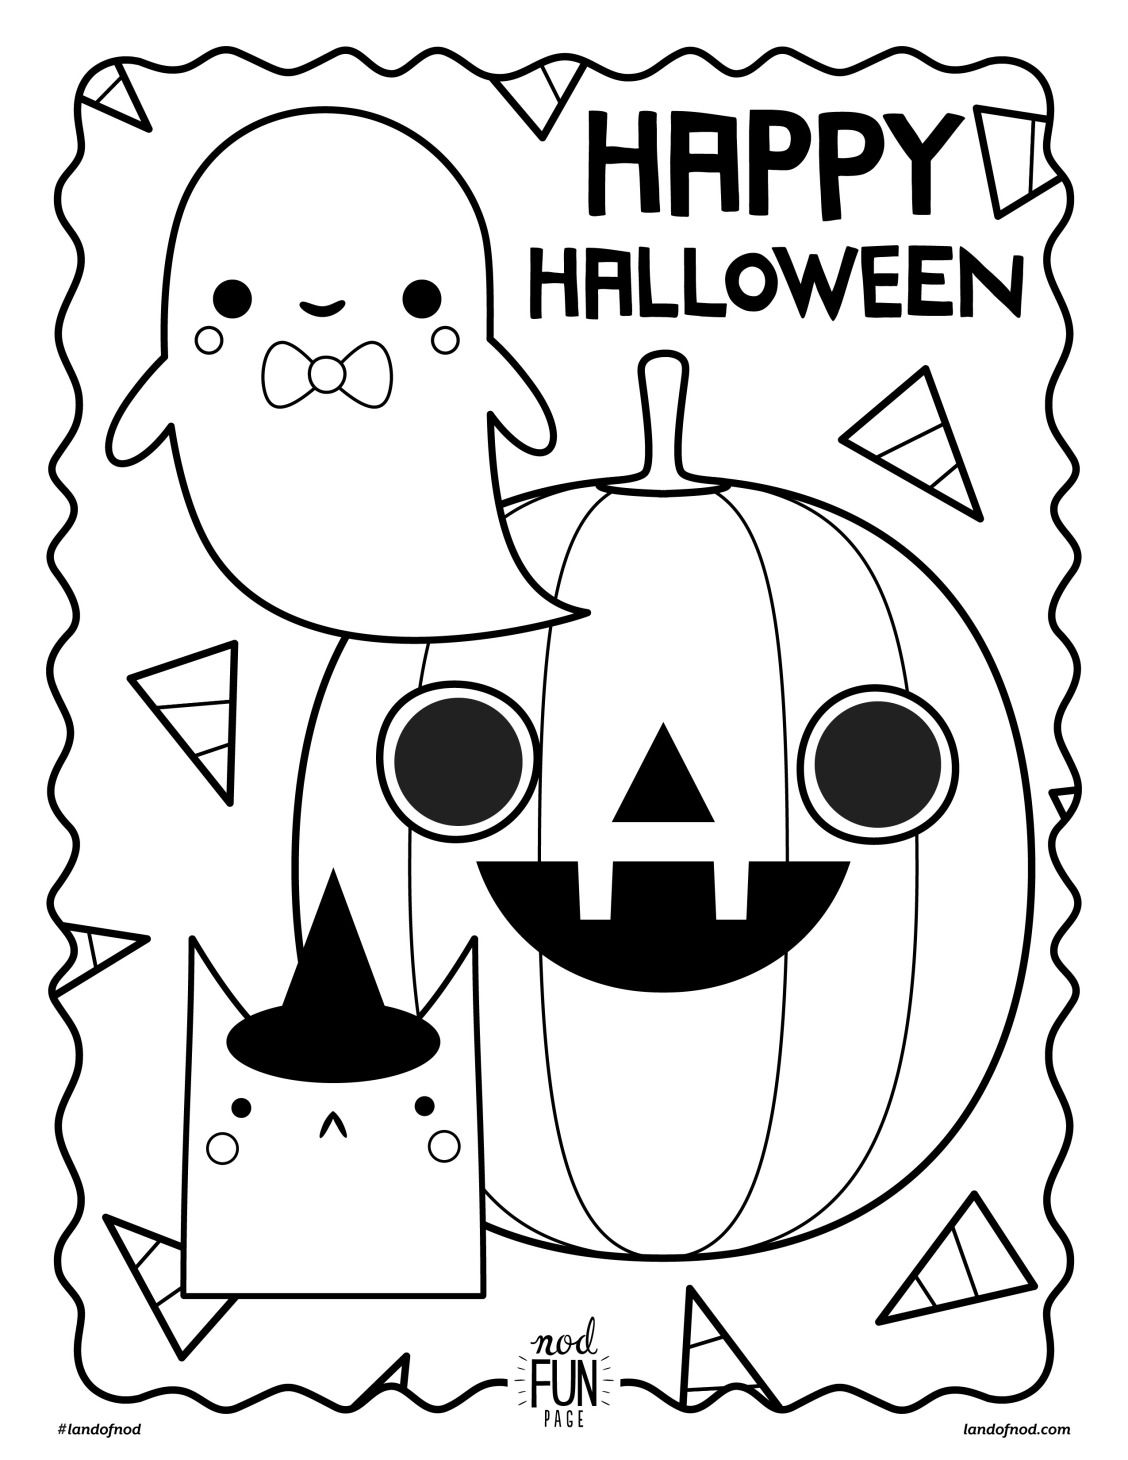 Free Printable Halloween Coloring Page | Halloween coloring, Free ...